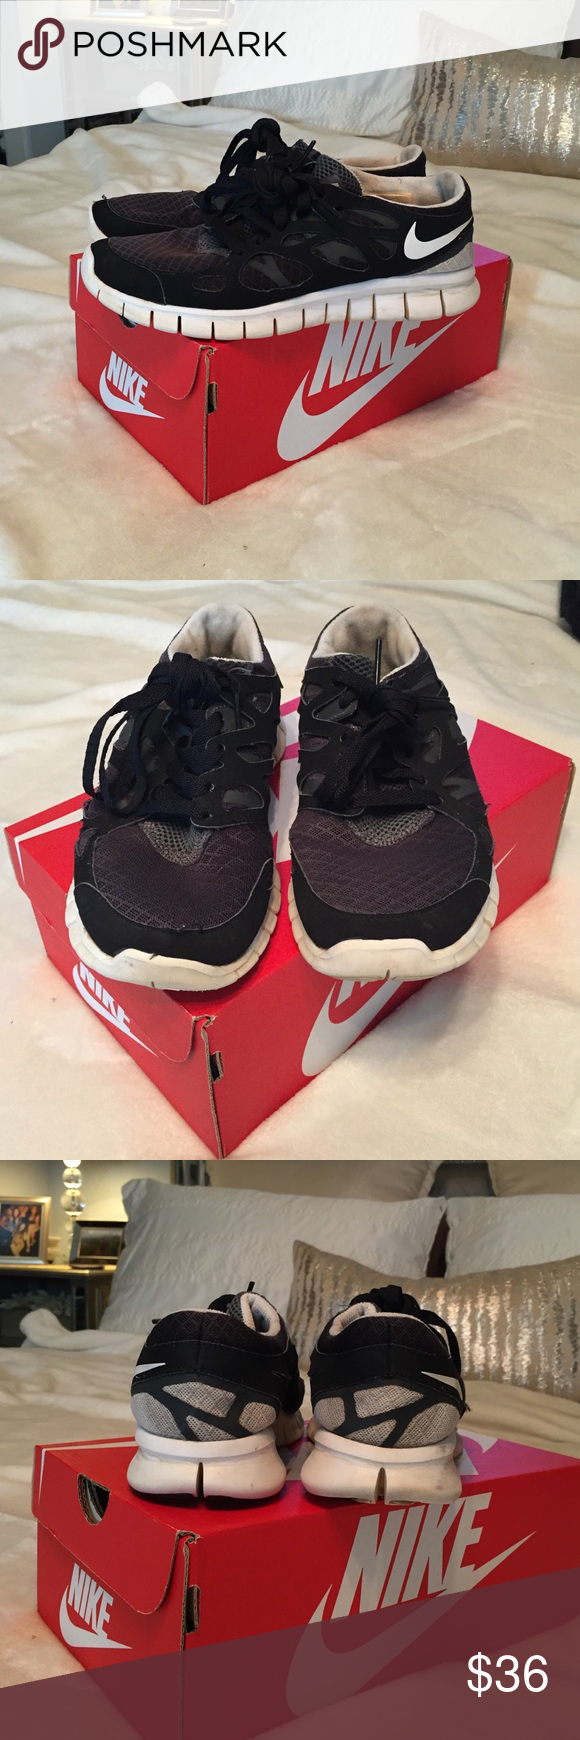 Nike free run 2 Worn but still lots of life left in them! Nike Shoes Athletic Shoes